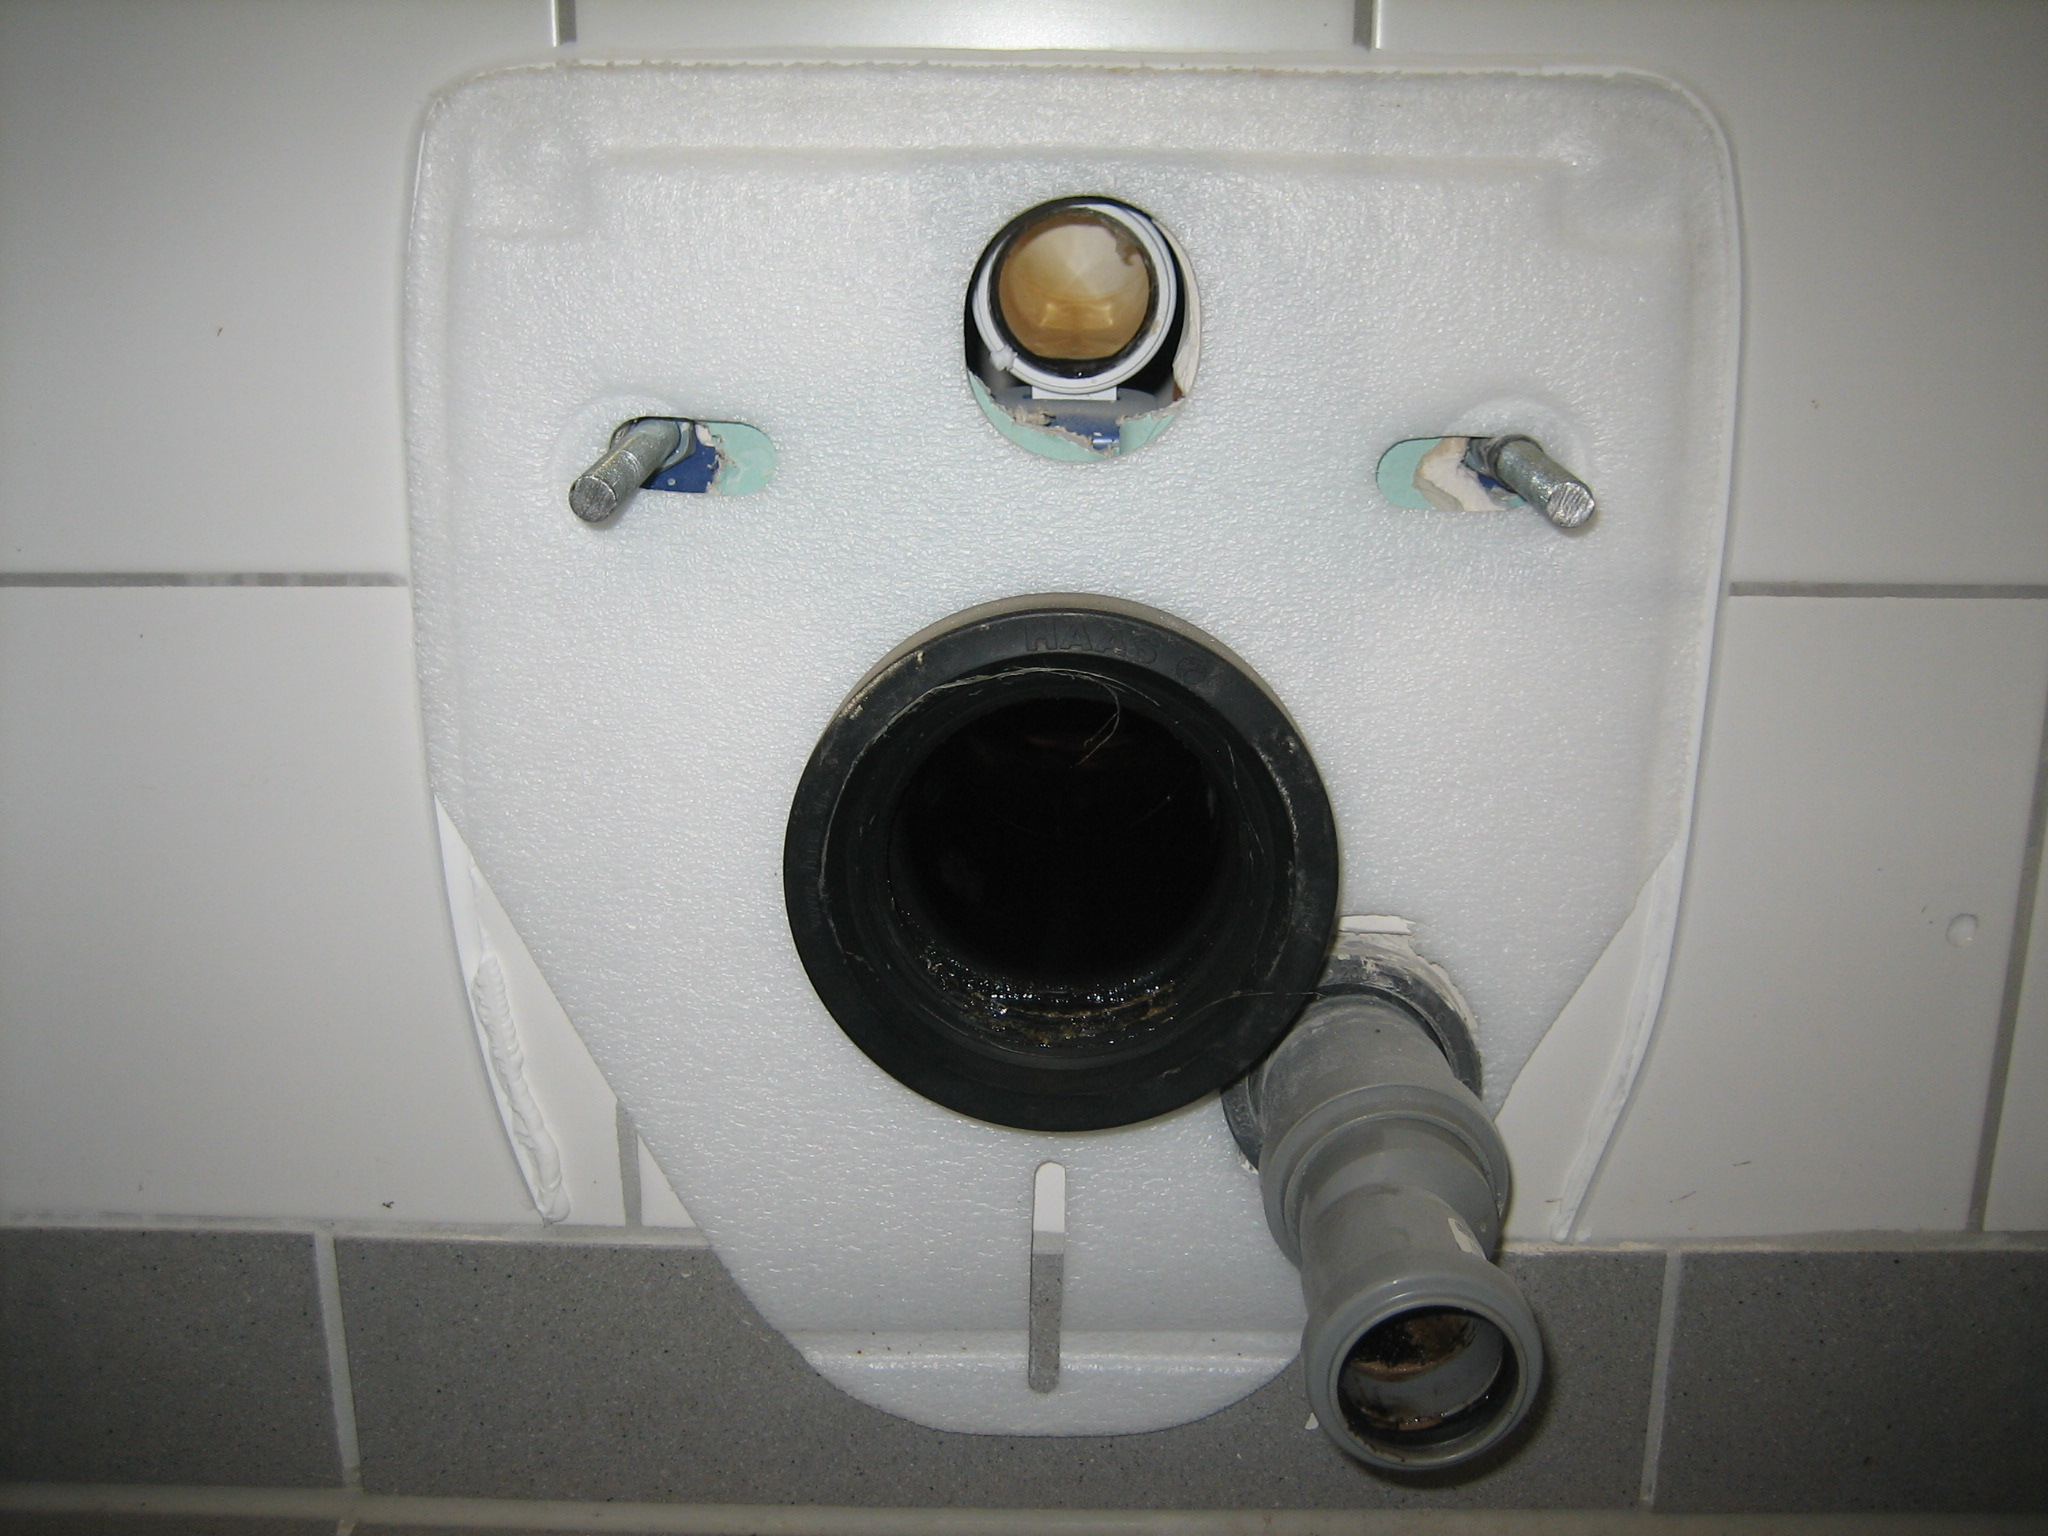 File:Connection for NoMix toilet (3127571071) jpg